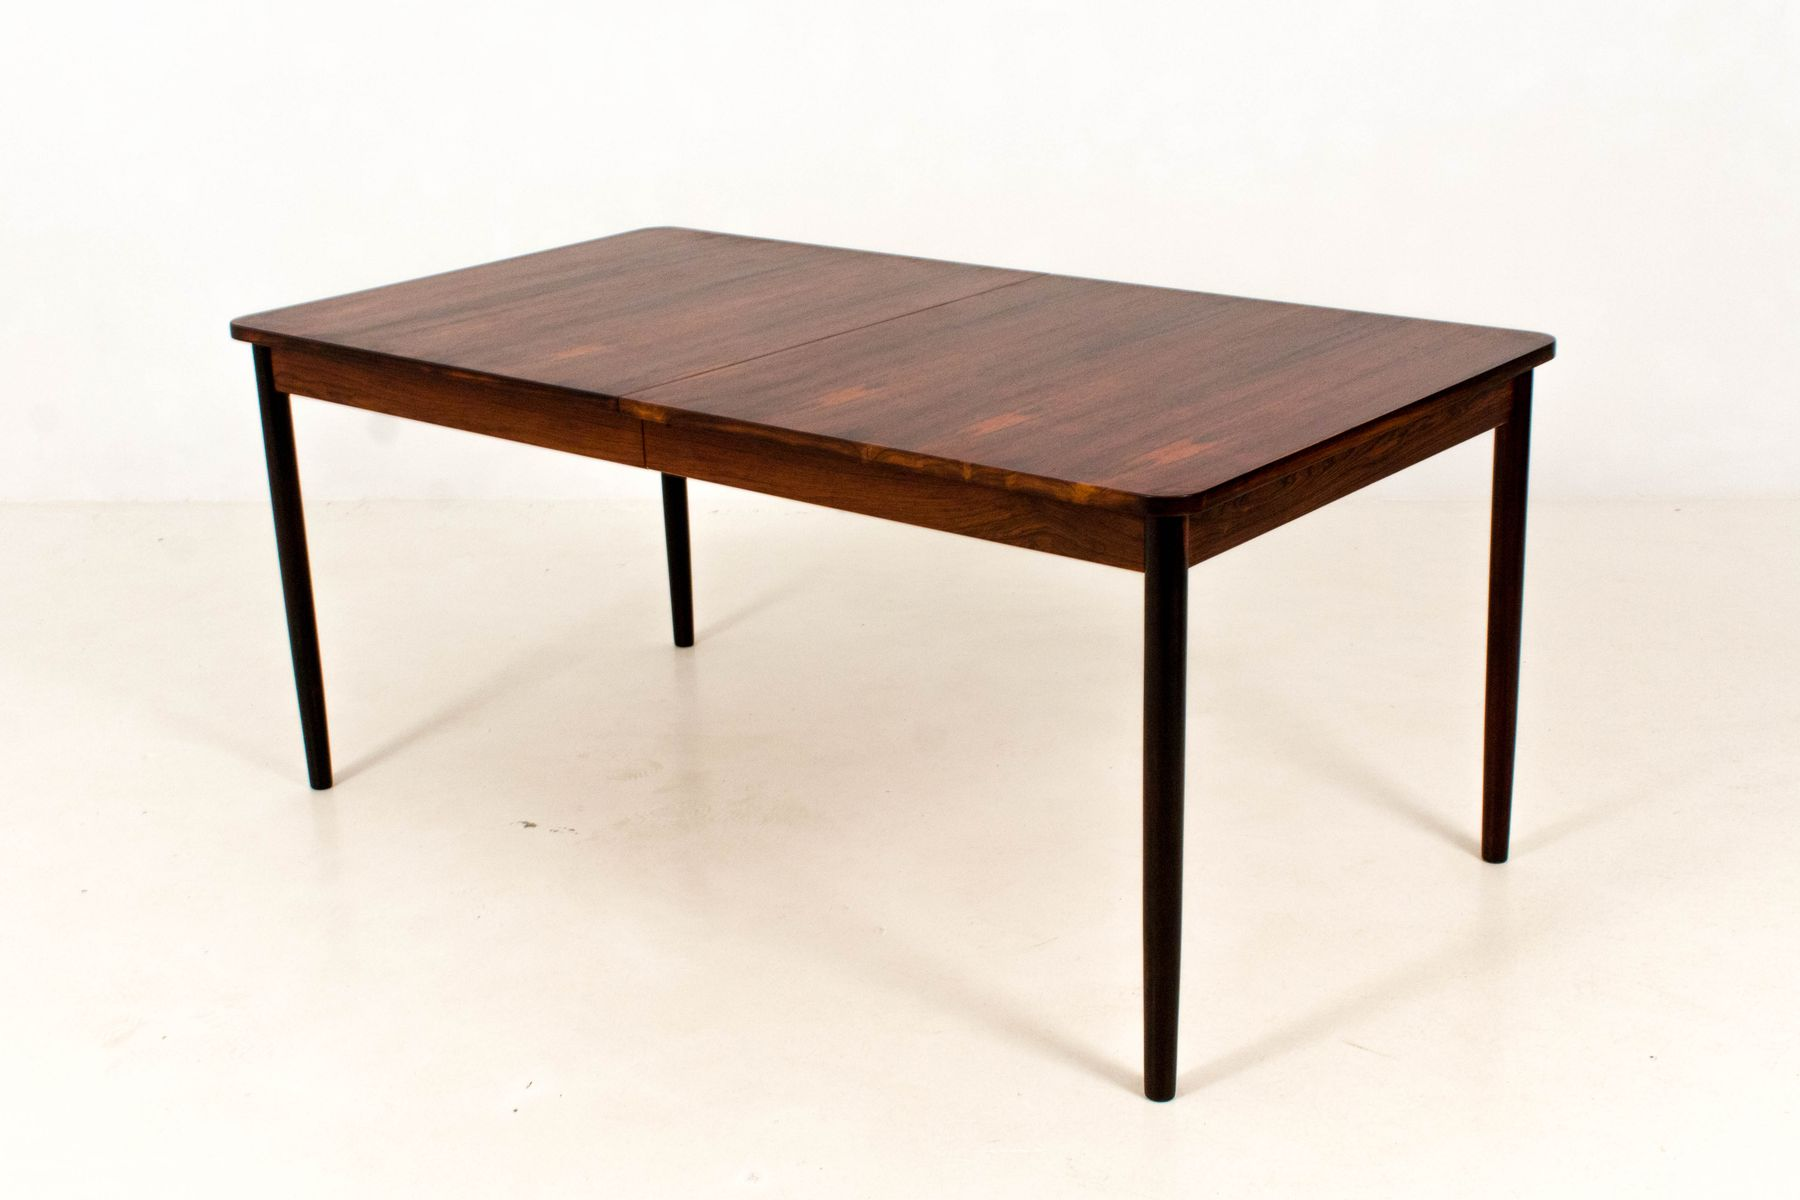 midcentury modern large extendable dining table from fristho  - midcentury modern large extendable dining table from fristho s  price per piece